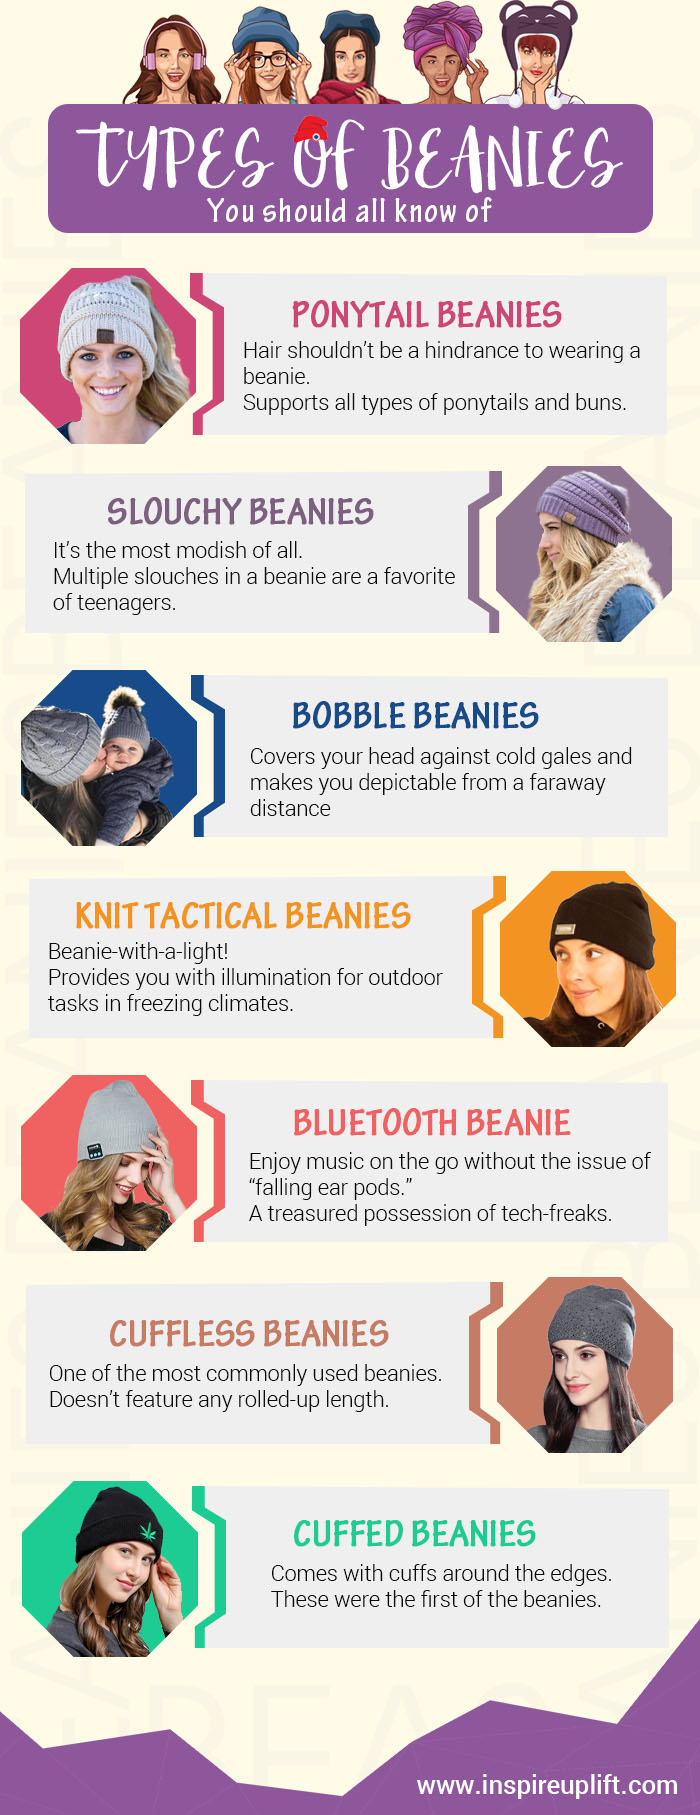 Types of beanies